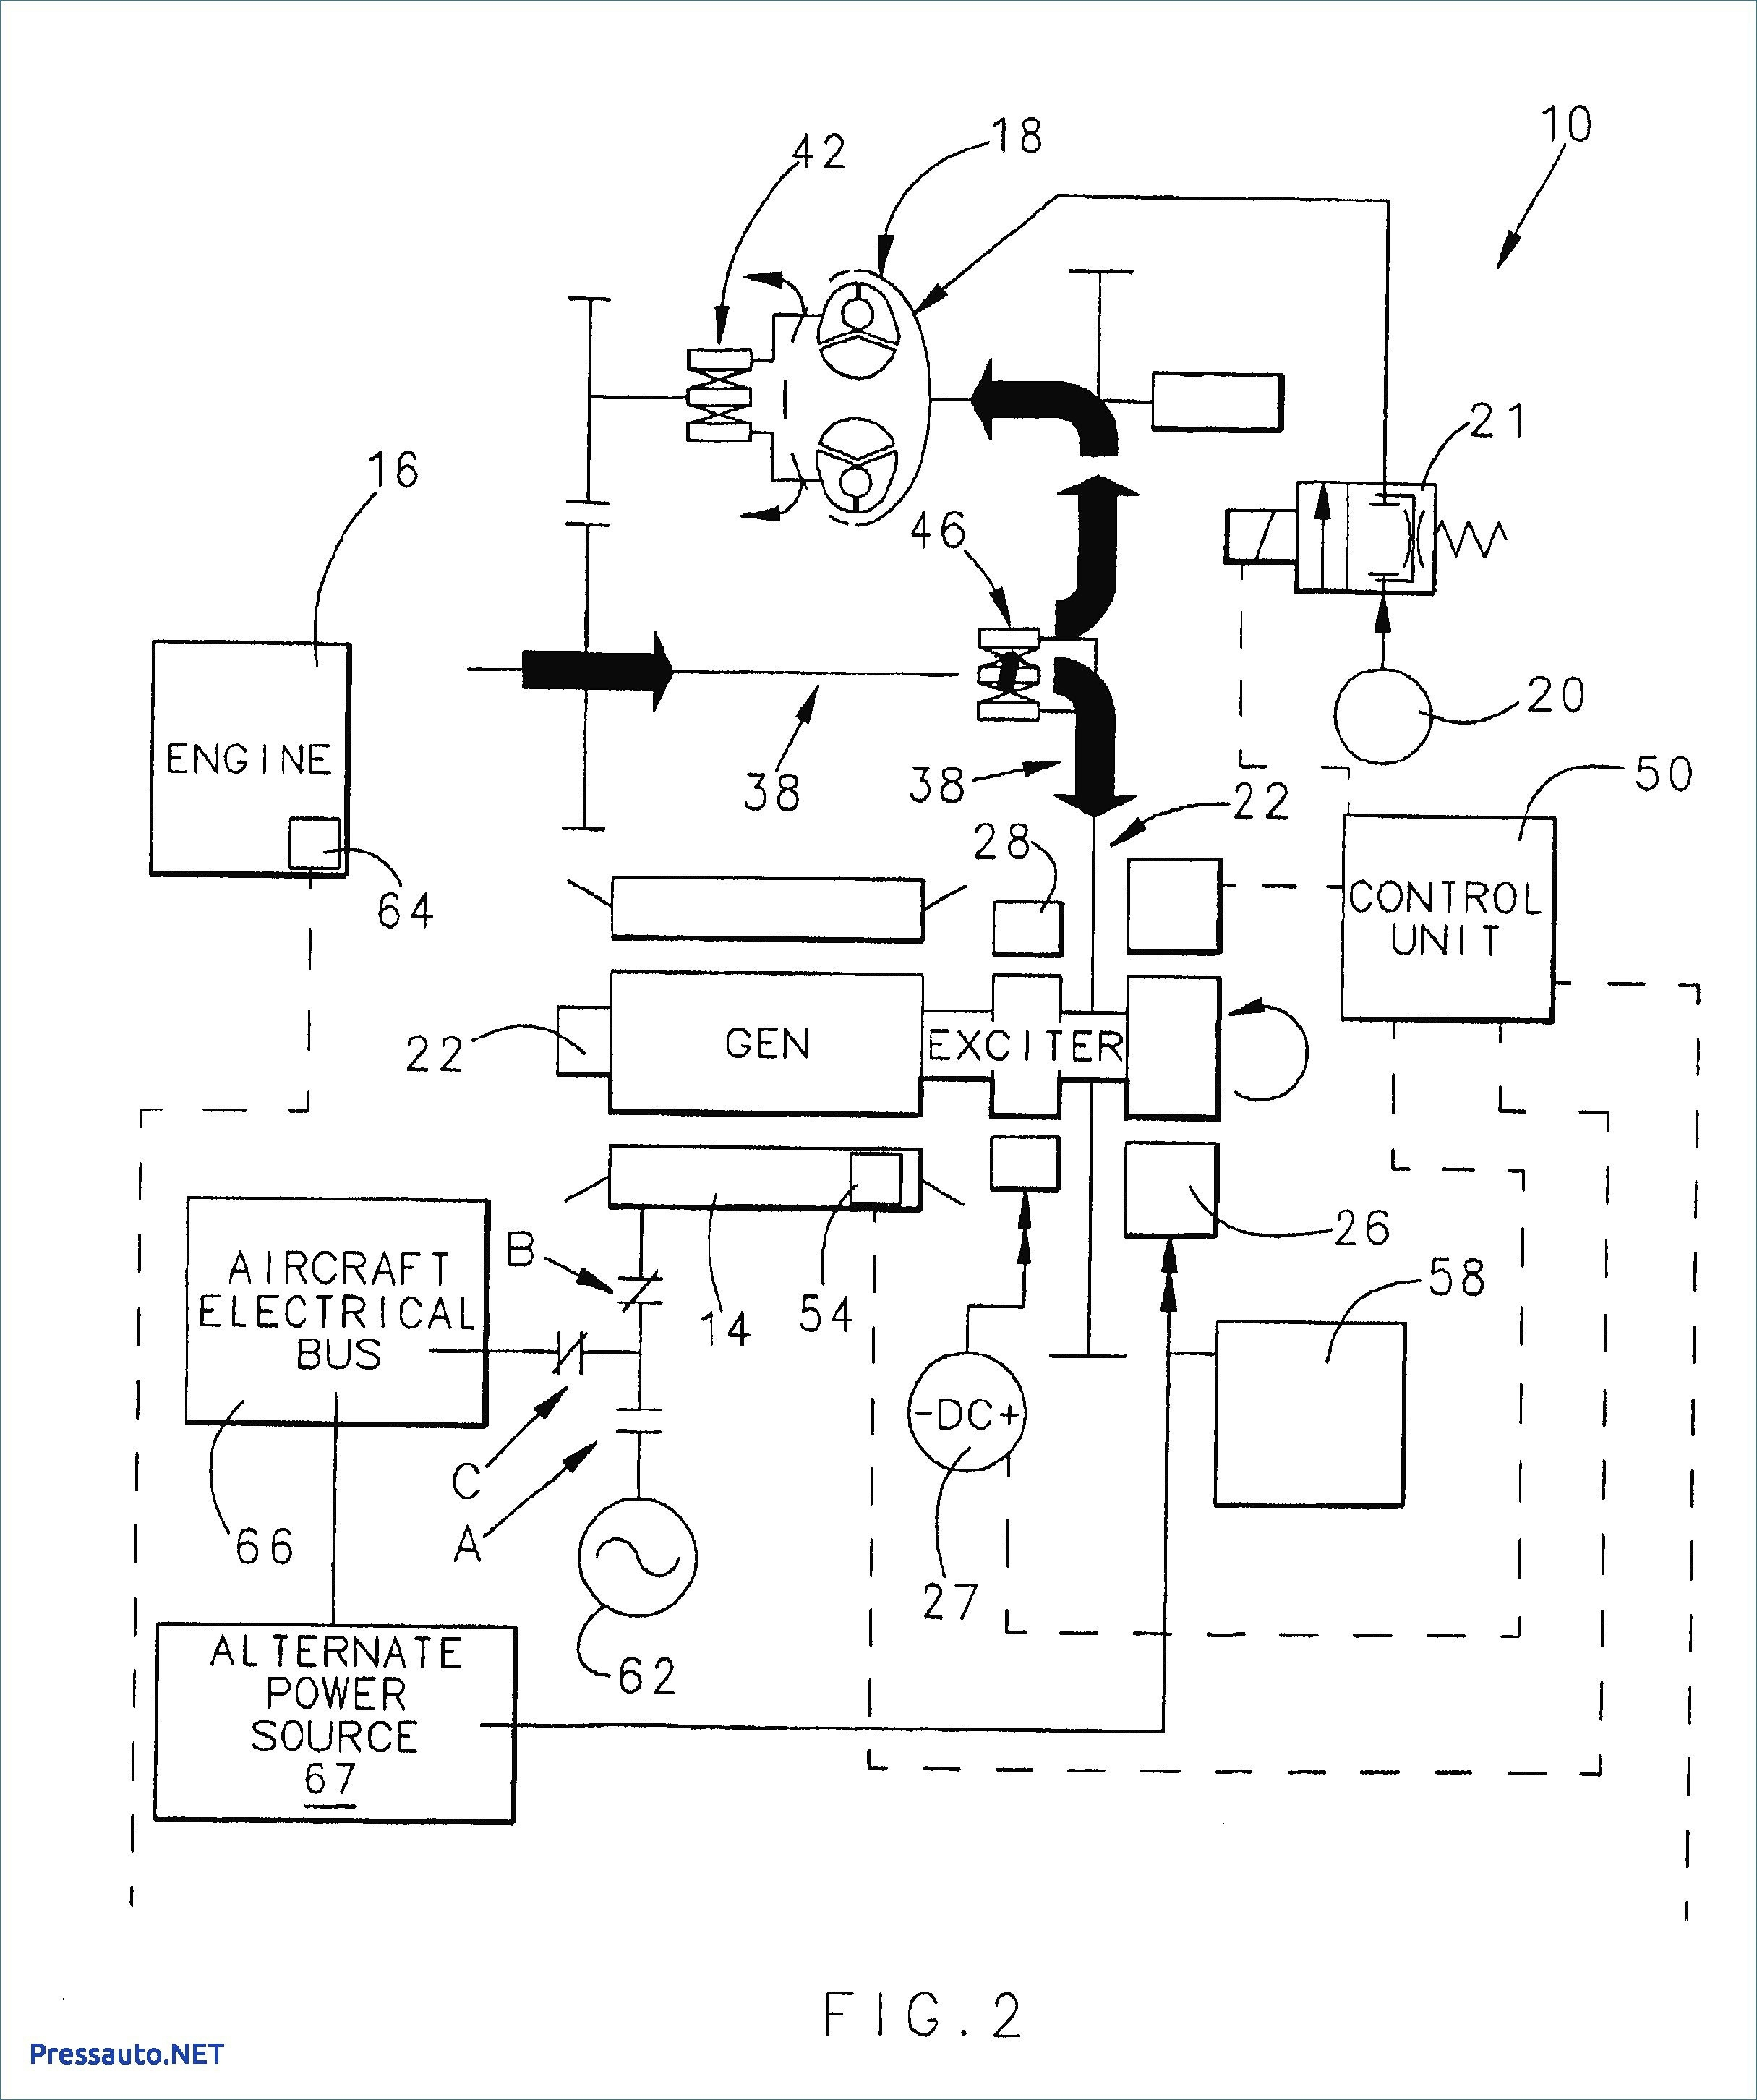 plane power alternator wiring diagram Download-Wiring Diagram Pics Detail Name plane power alternator wiring diagram – Aircraft Alternator 8-m